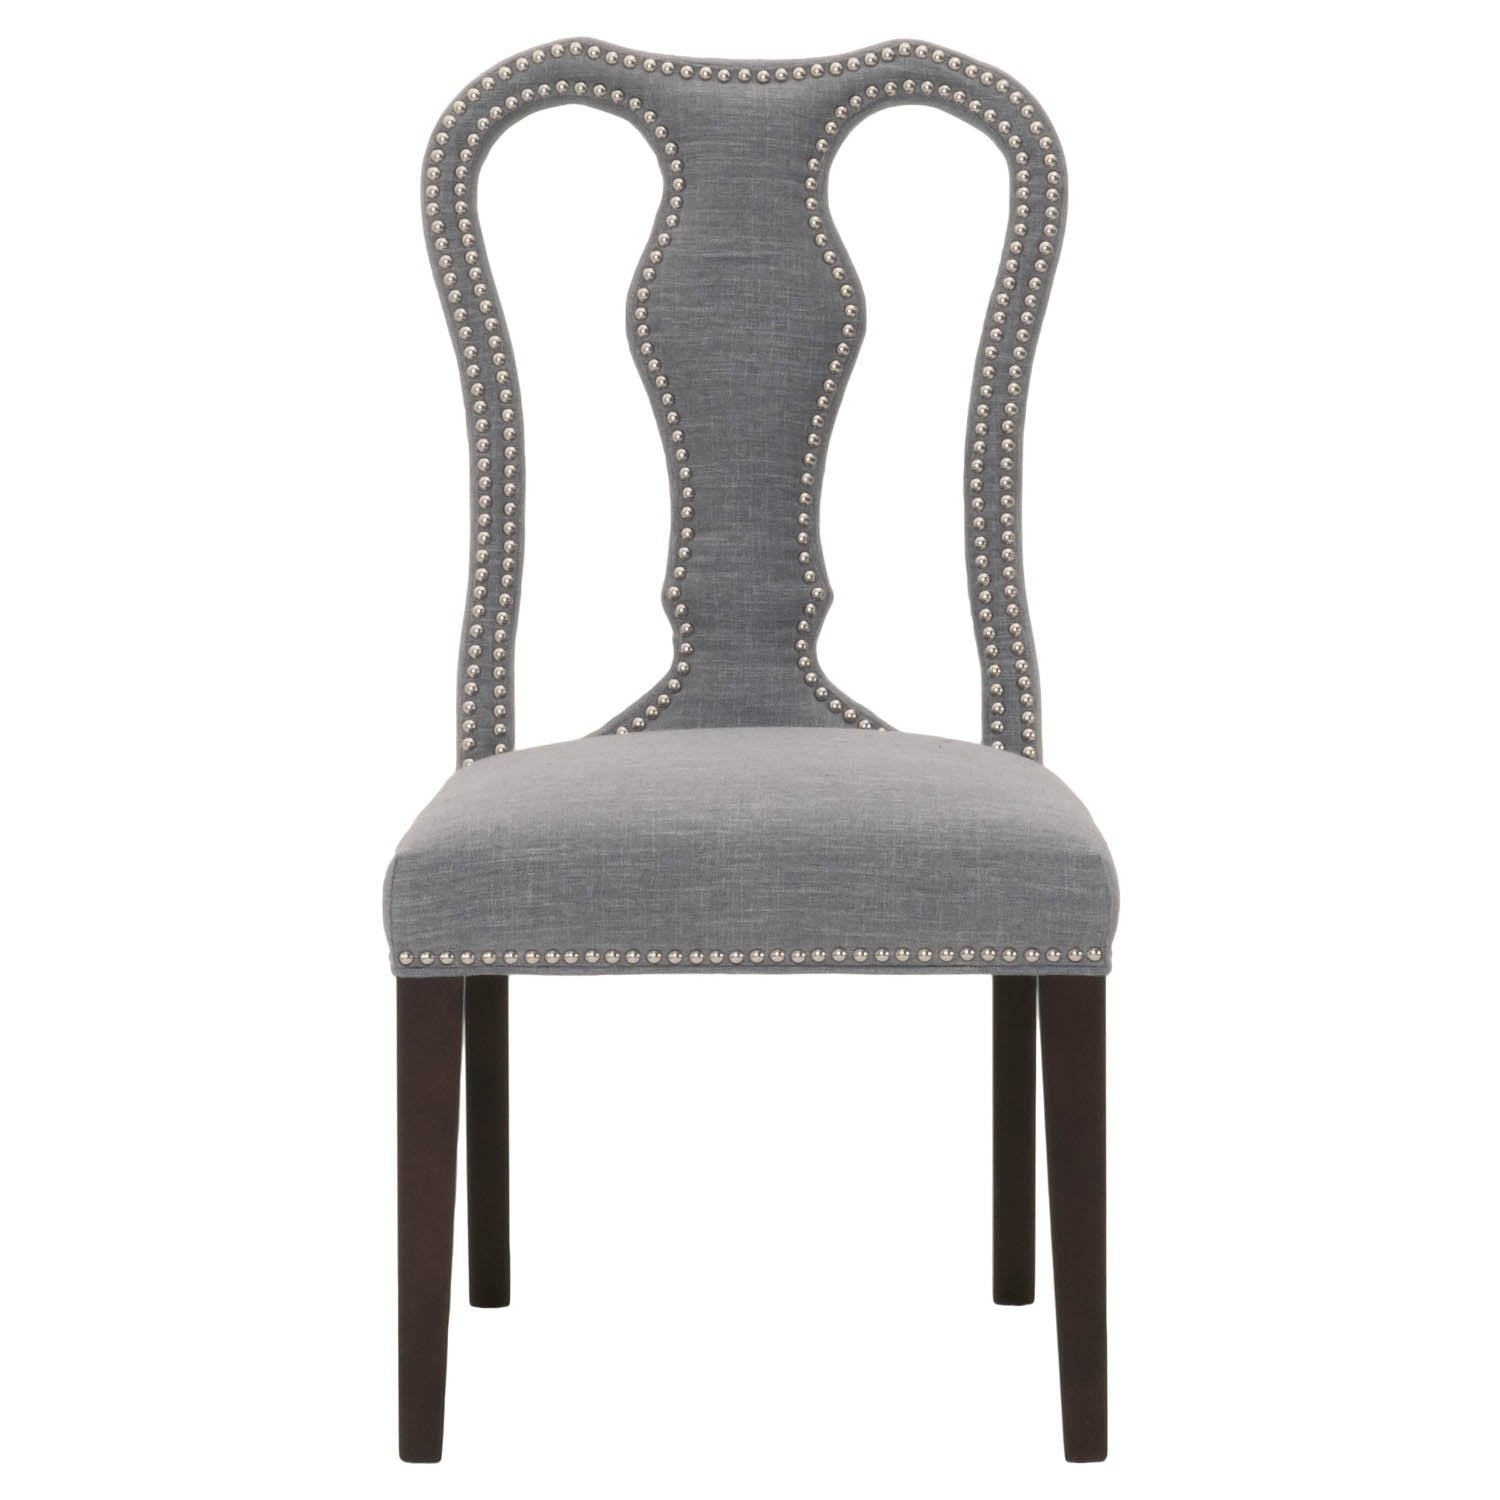 Bloom Dining Chair (Set of 2) in Smoke Fabric